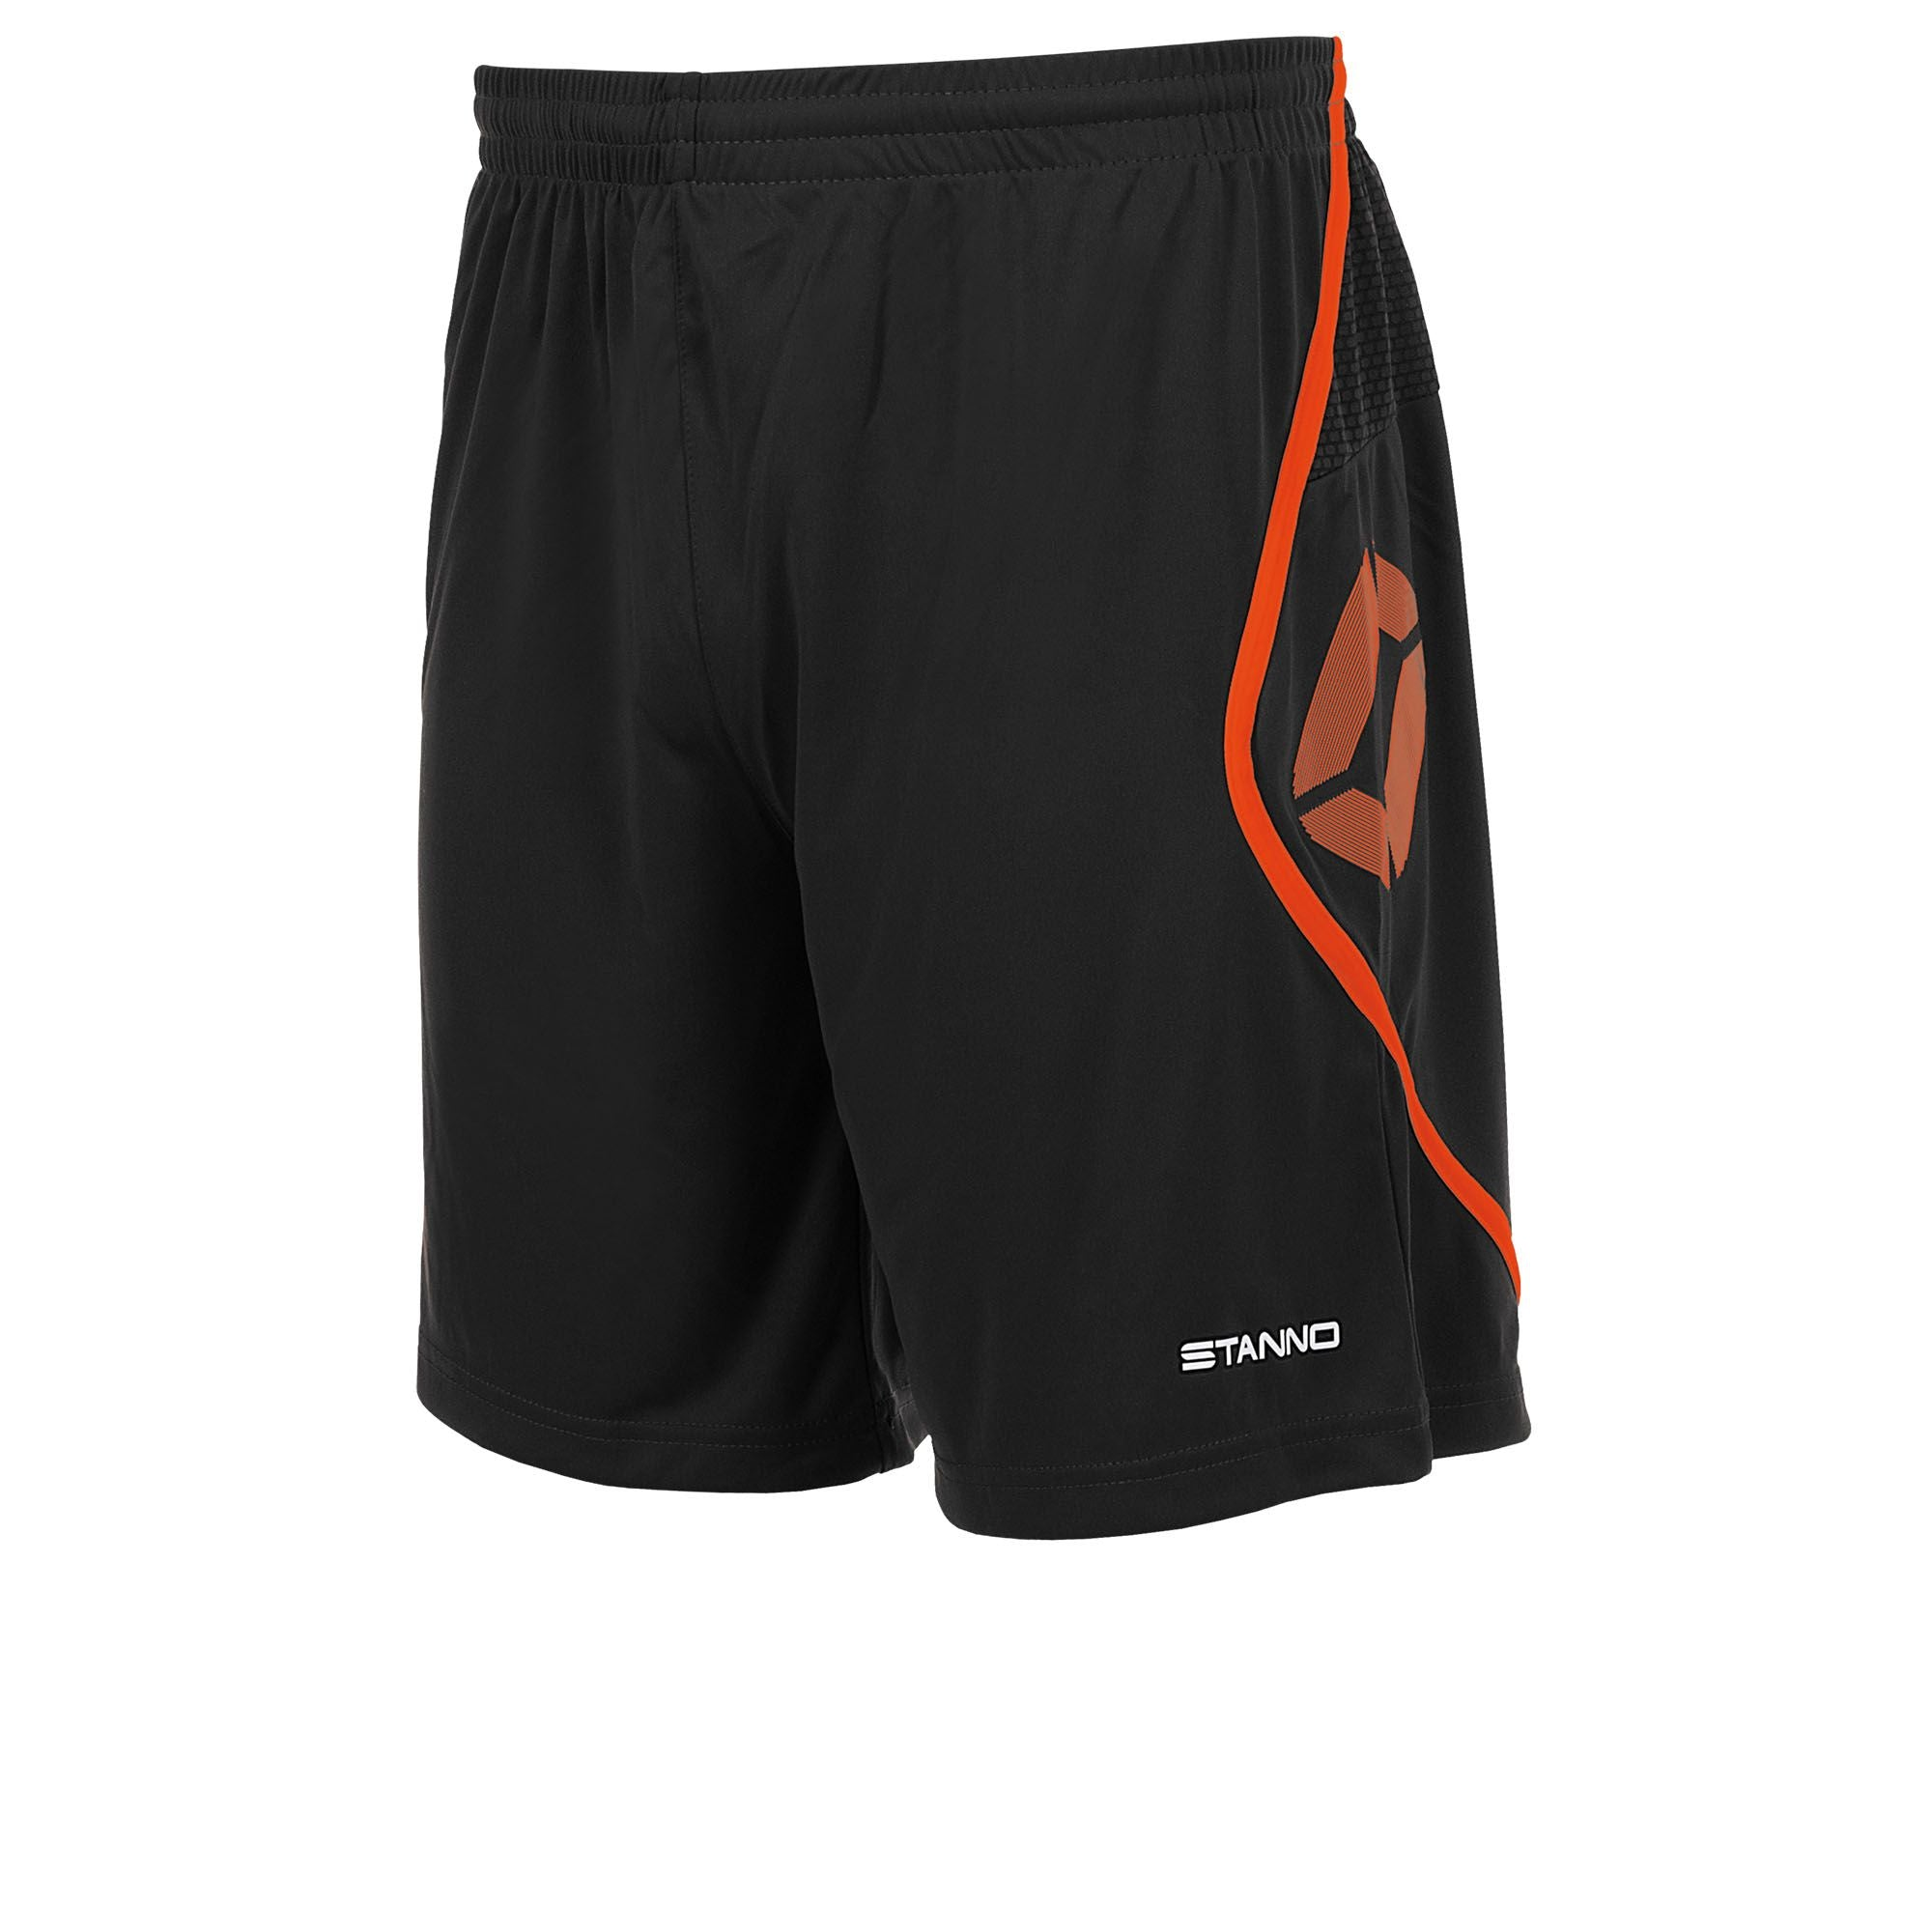 Stanno Pisa Shorts - Black/Shocking Orange